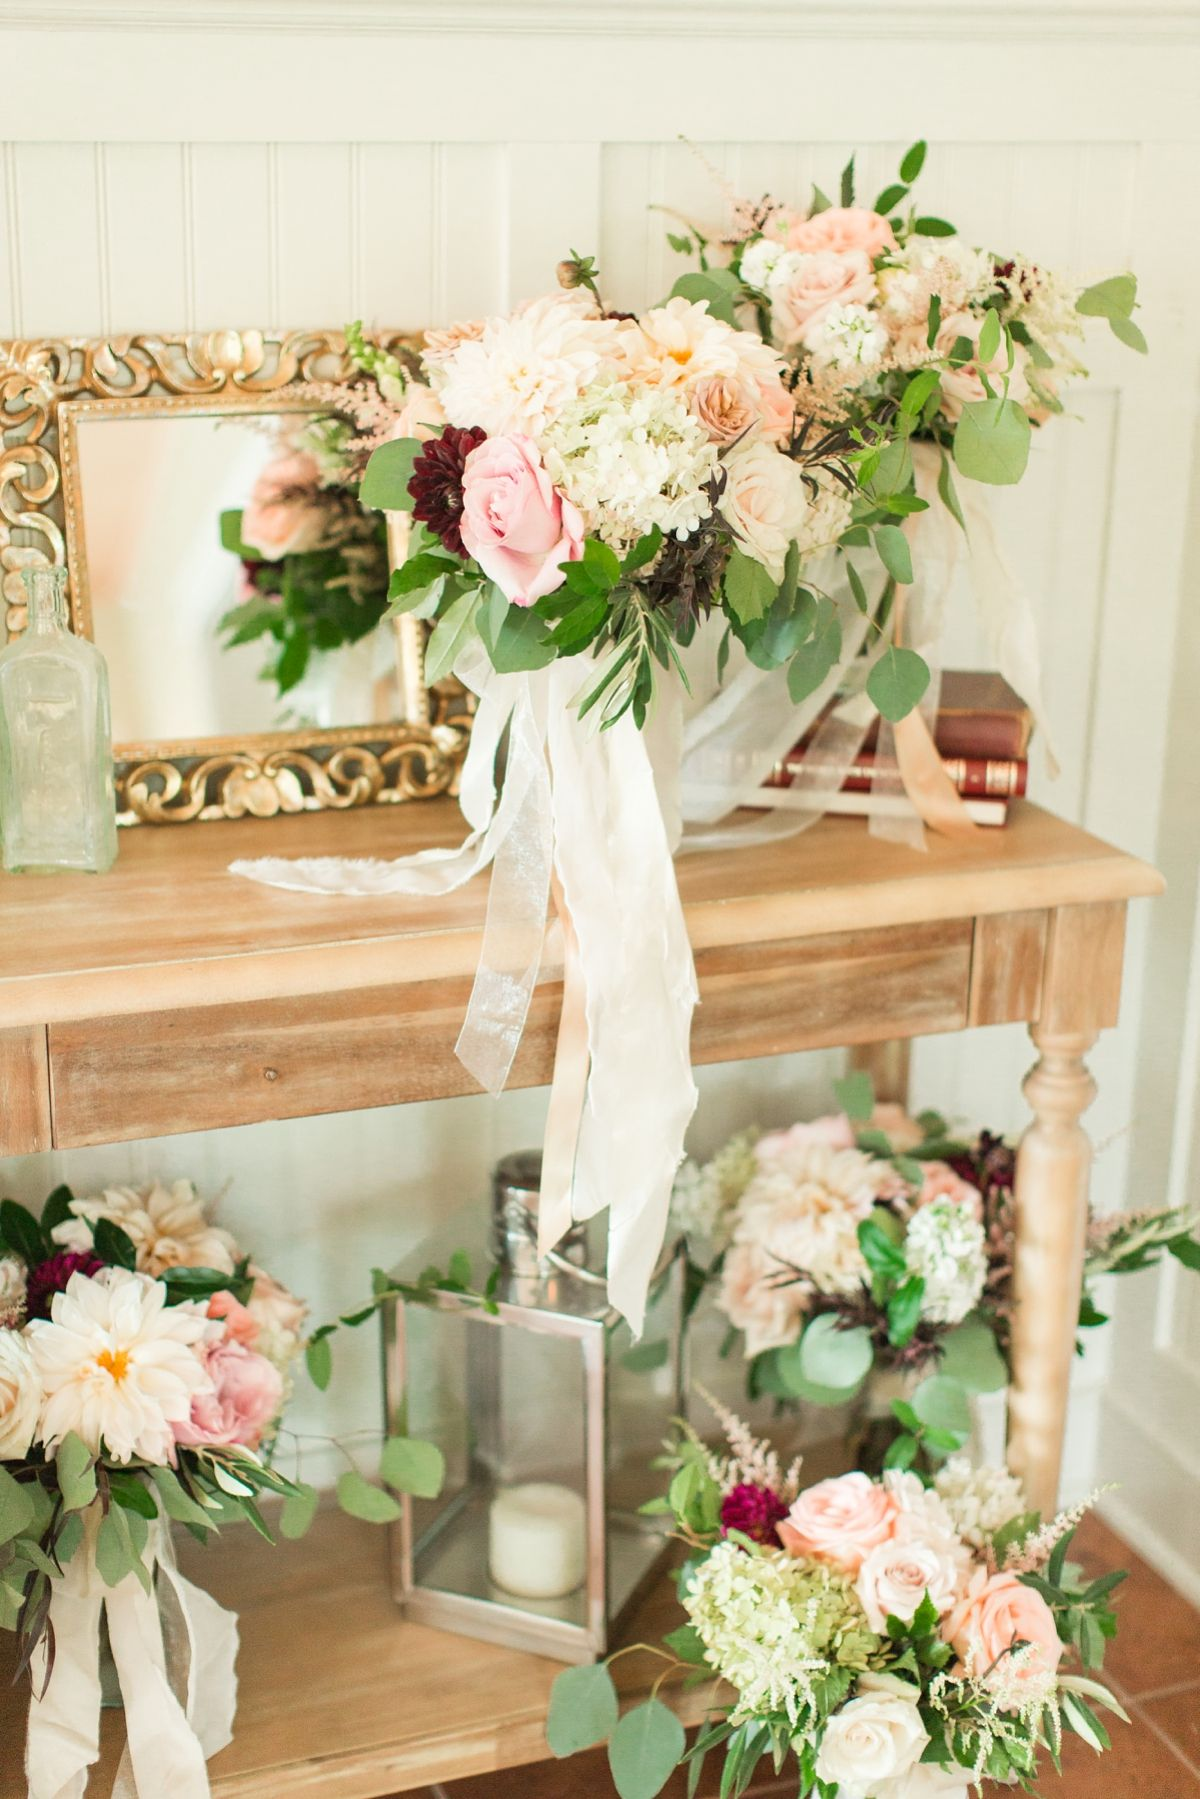 The wedding collective giveaway wedding at big spring farm with the wedding collective giveaway wedding at big spring farm with florals of neutrals pinks mightylinksfo Images